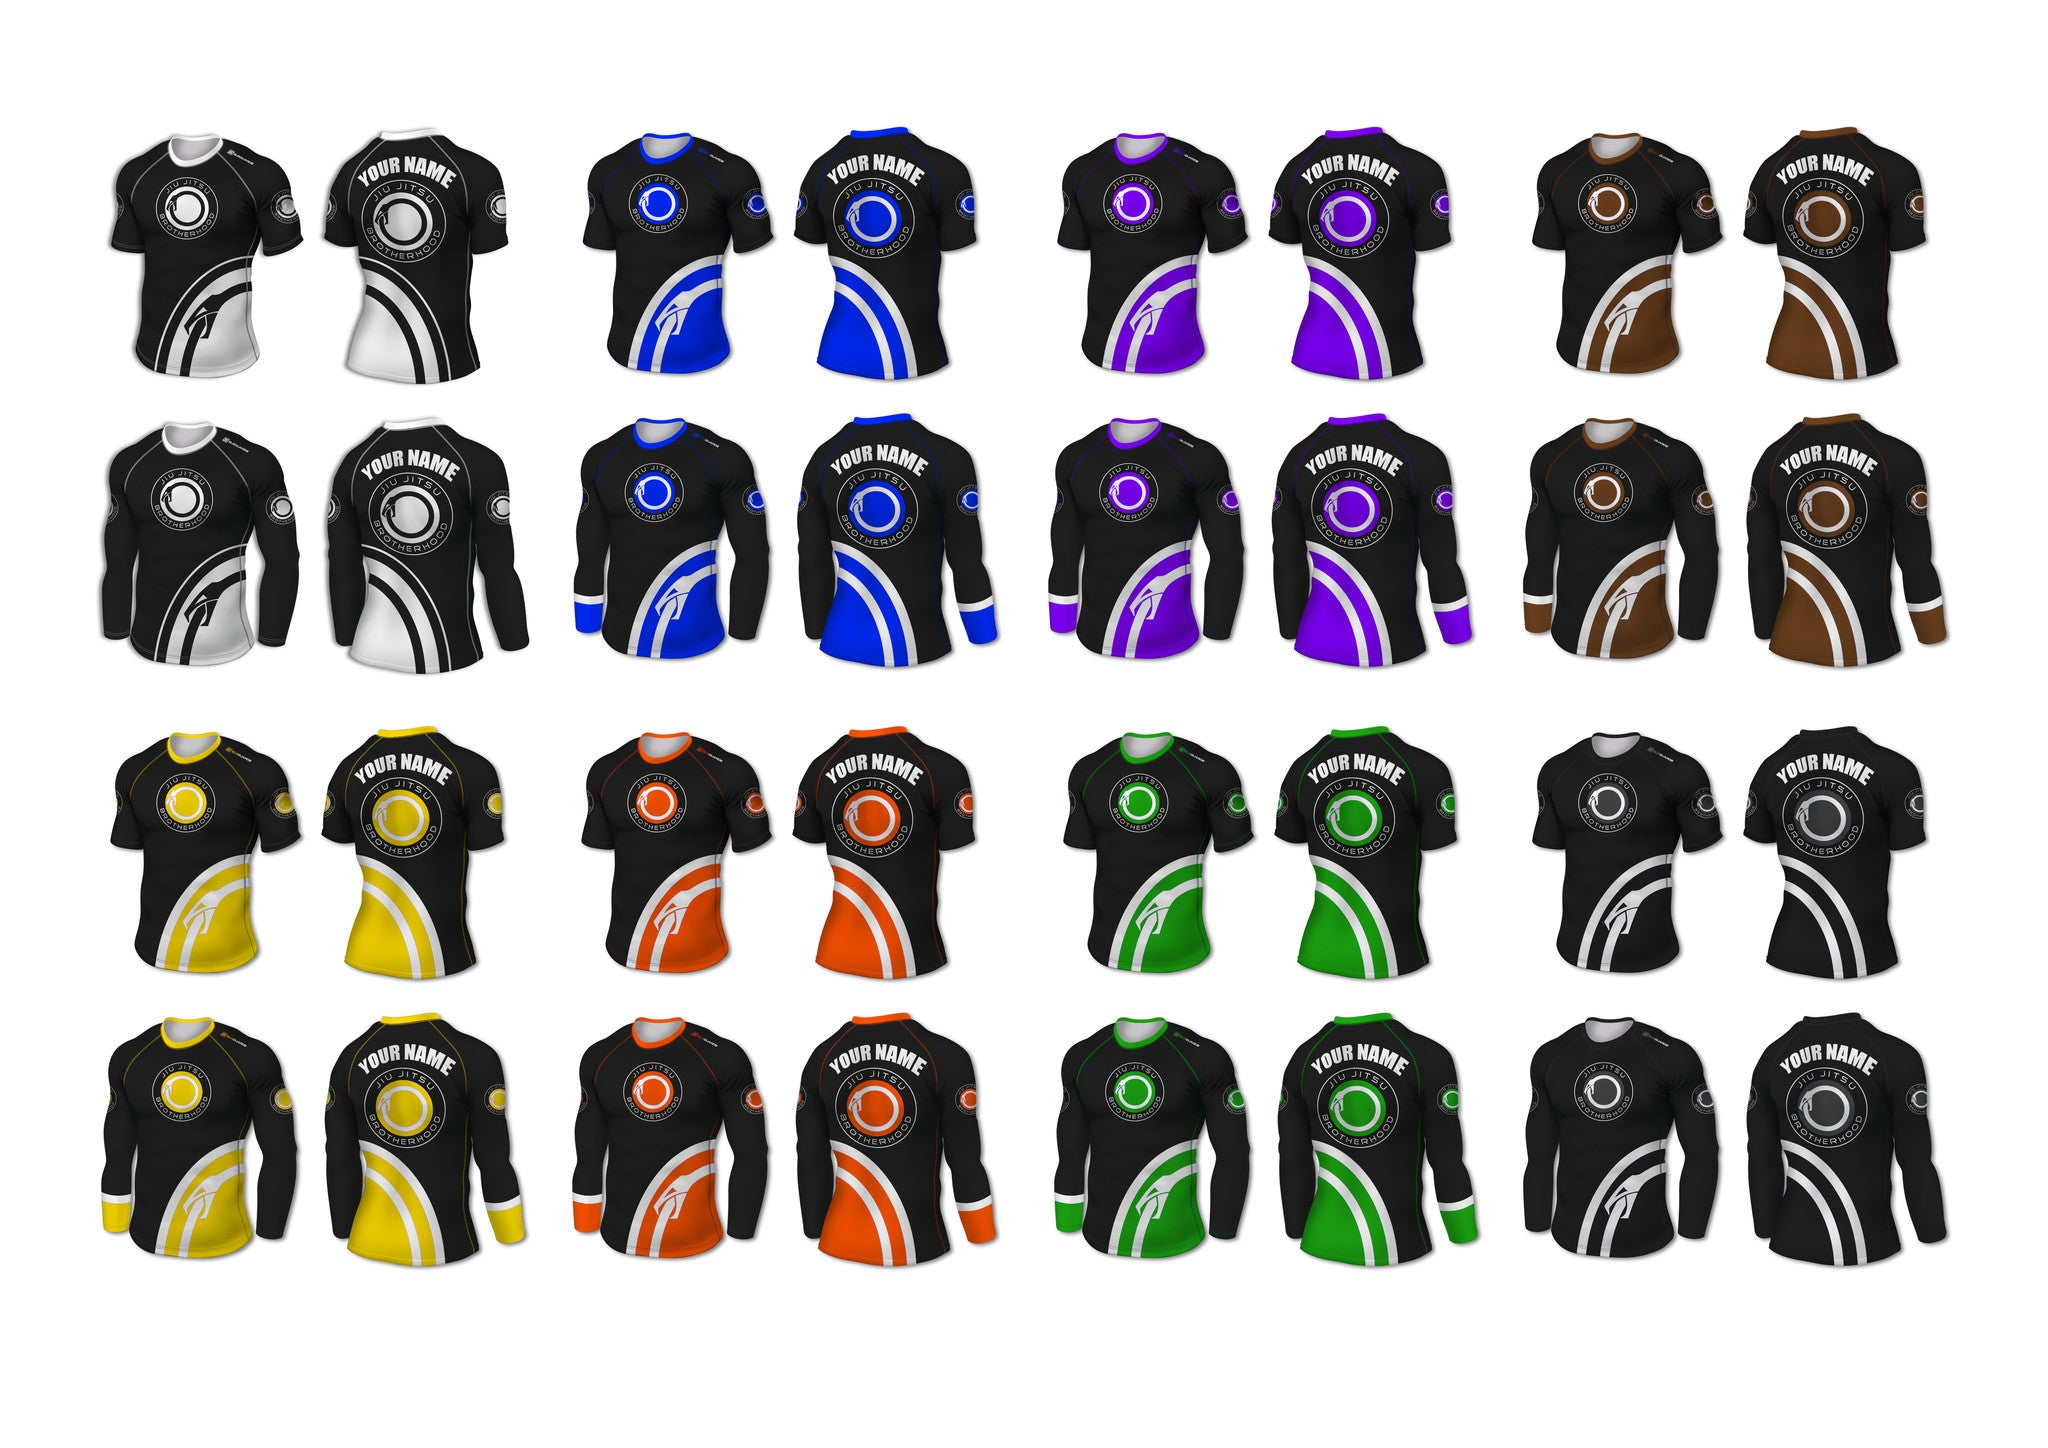 Custom Rashguard (IBJJF Colors) - The Jiu Jitsu Brotherhood  - 13